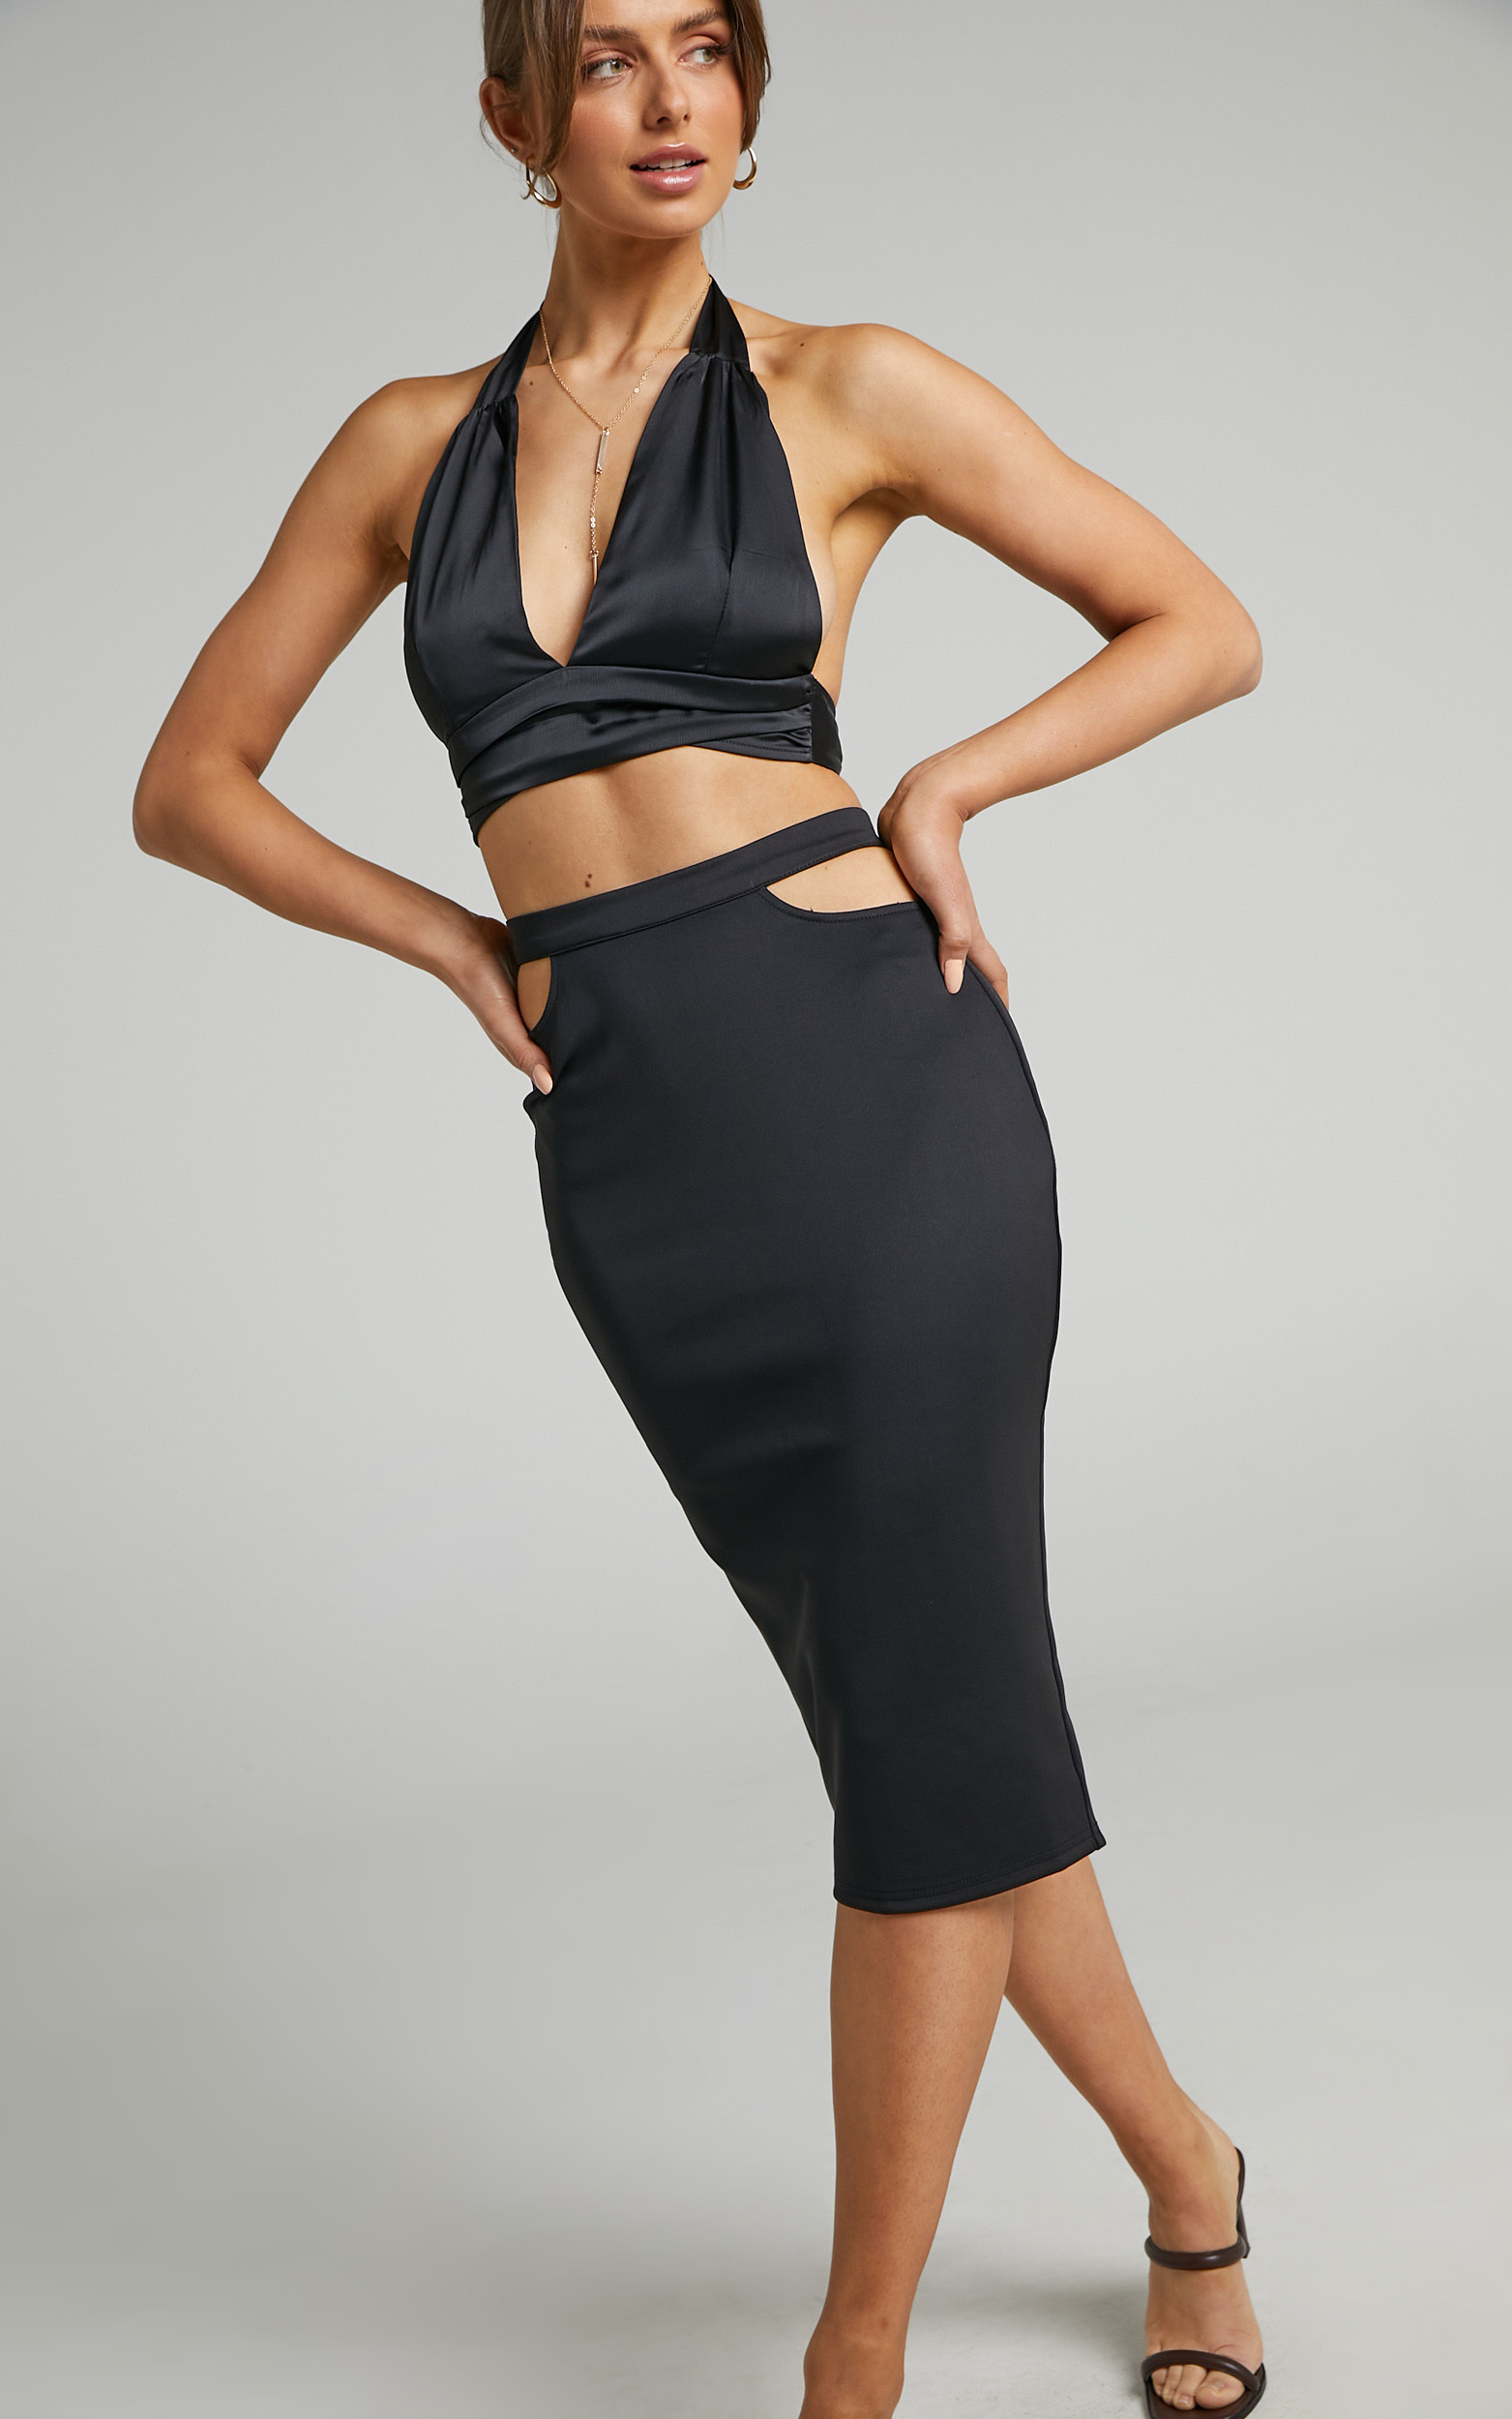 Bevin Waist Cutout Midi Skirt in Black - 06, BLK1, hi-res image number null